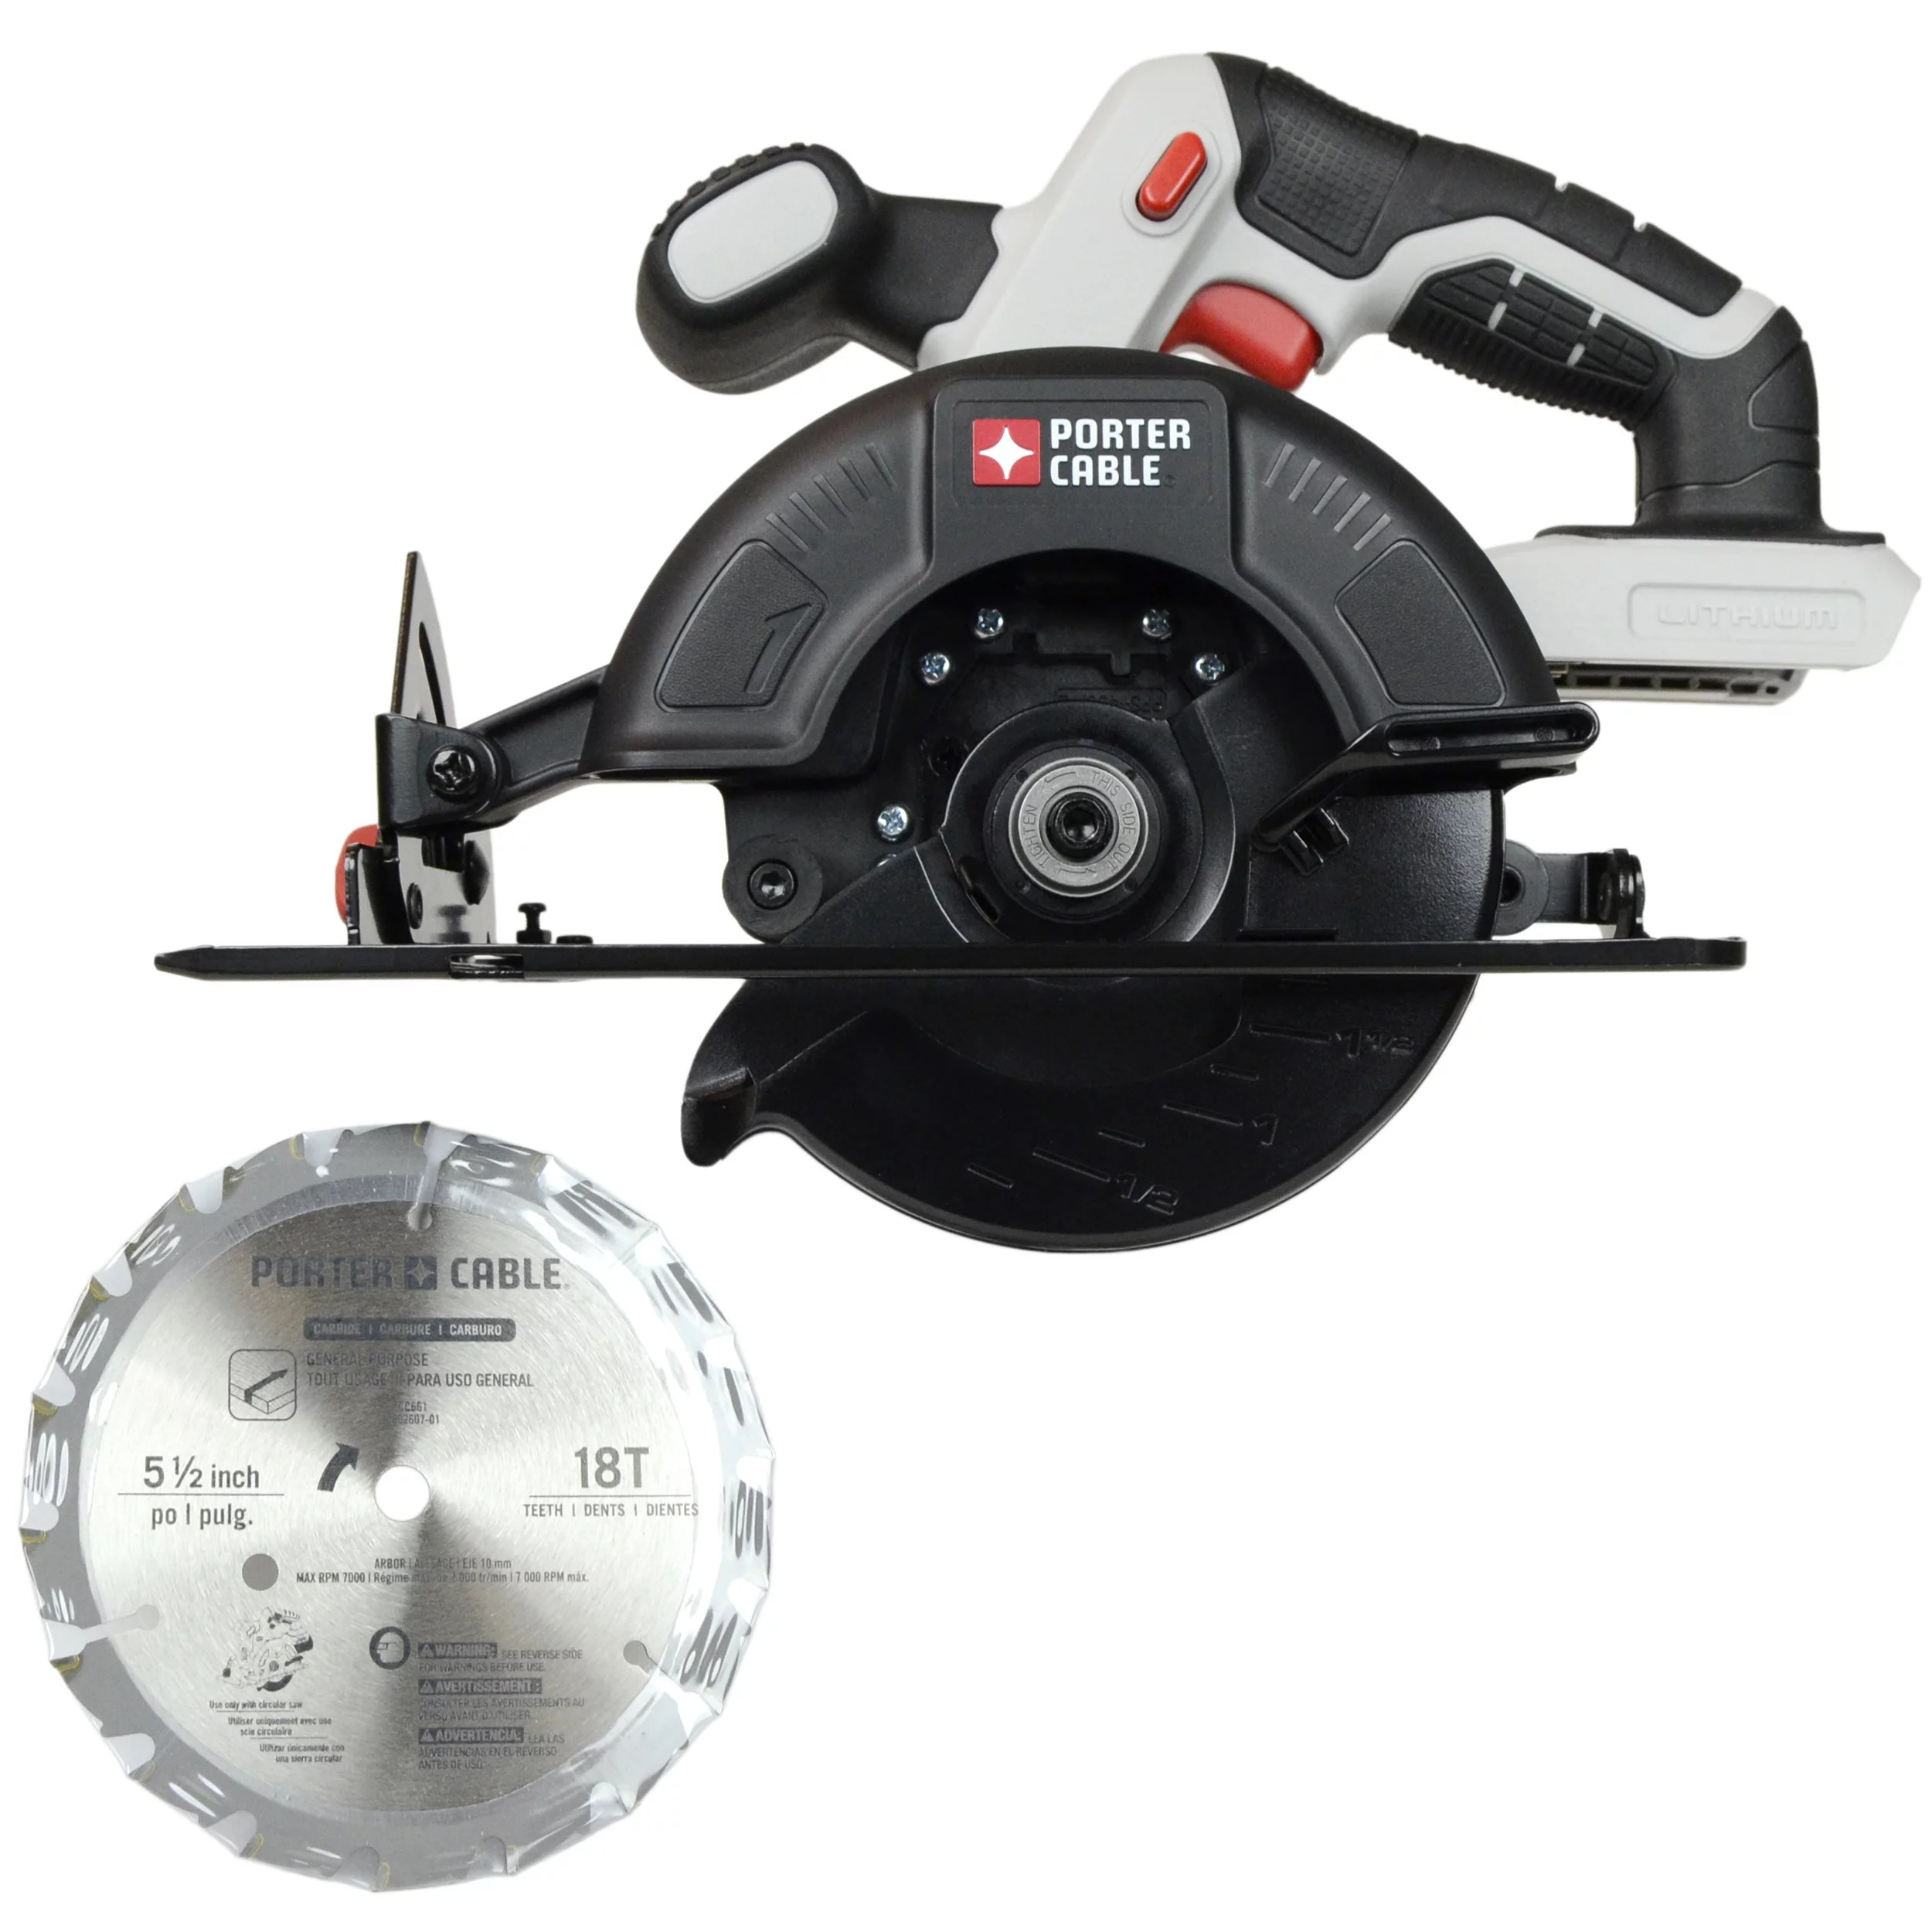 Porter Cable Folding Miter Saw Review